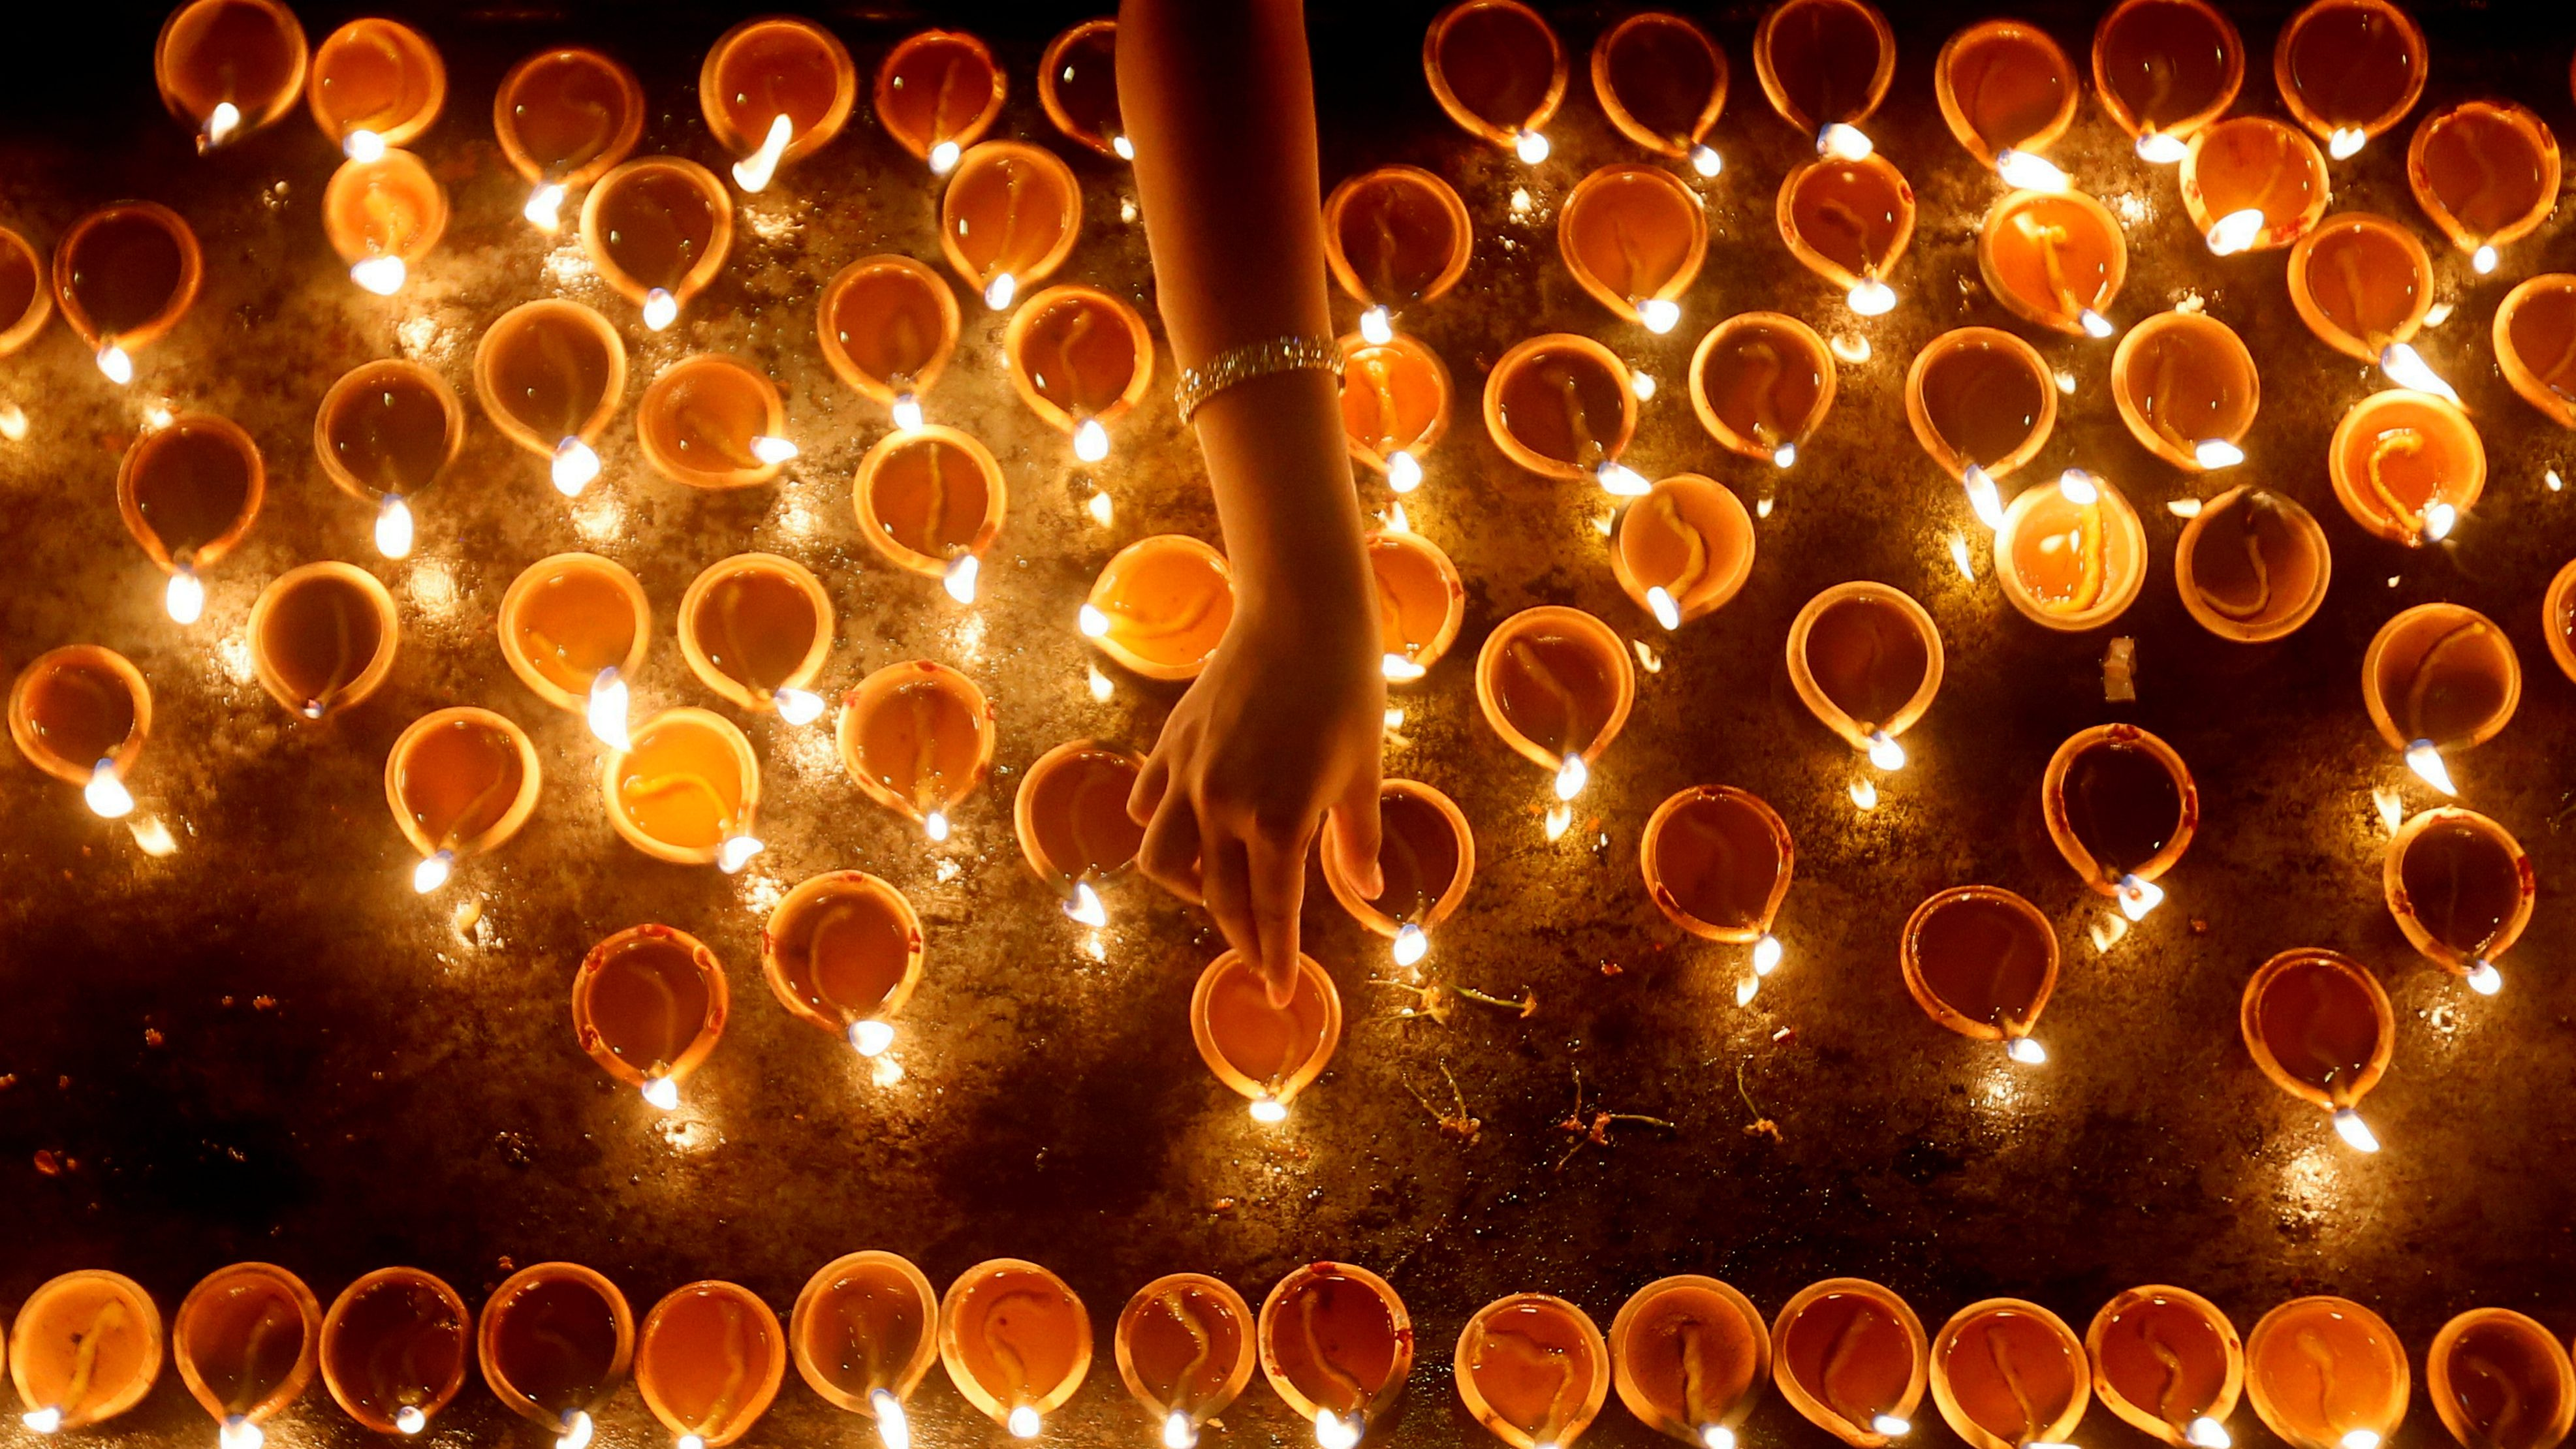 A devotee lights oil lamps at a religious ceremony during the Diwali or Deepavali festival at a Hindu temple in Colombo, Sri Lanka October 18, 2017.